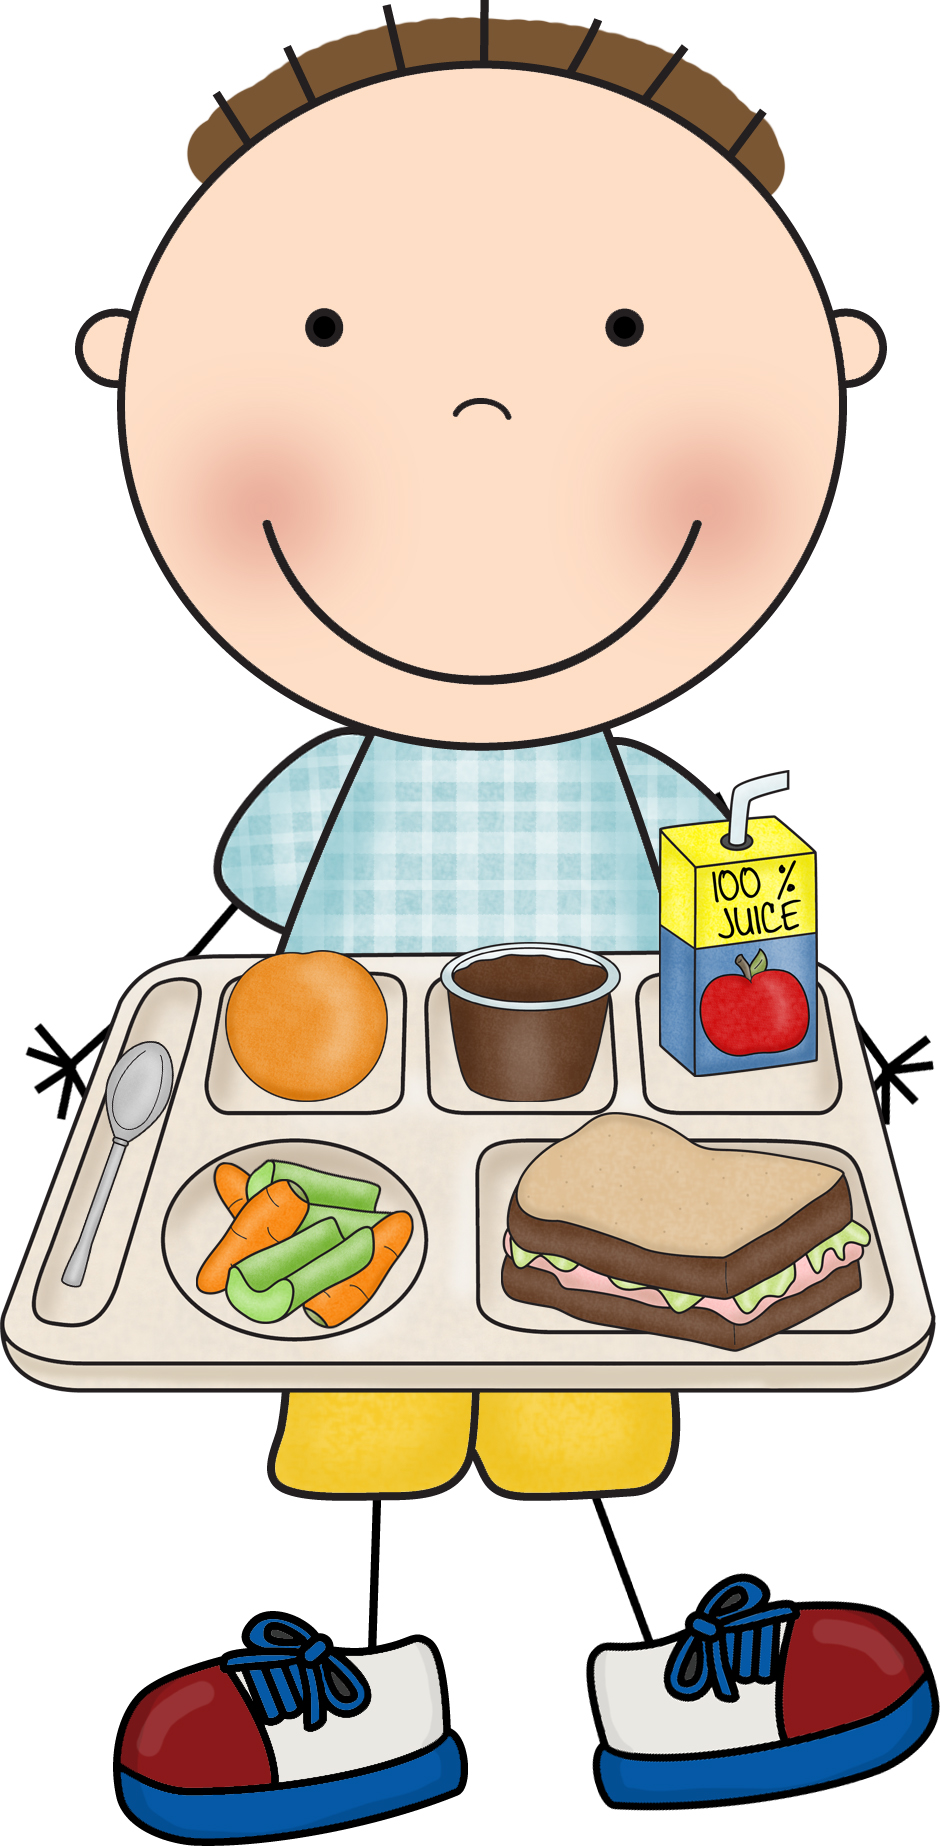 Free school cafeteria clipart graphic Lunch Time Clipart | Free download best Lunch Time Clipart on ... graphic